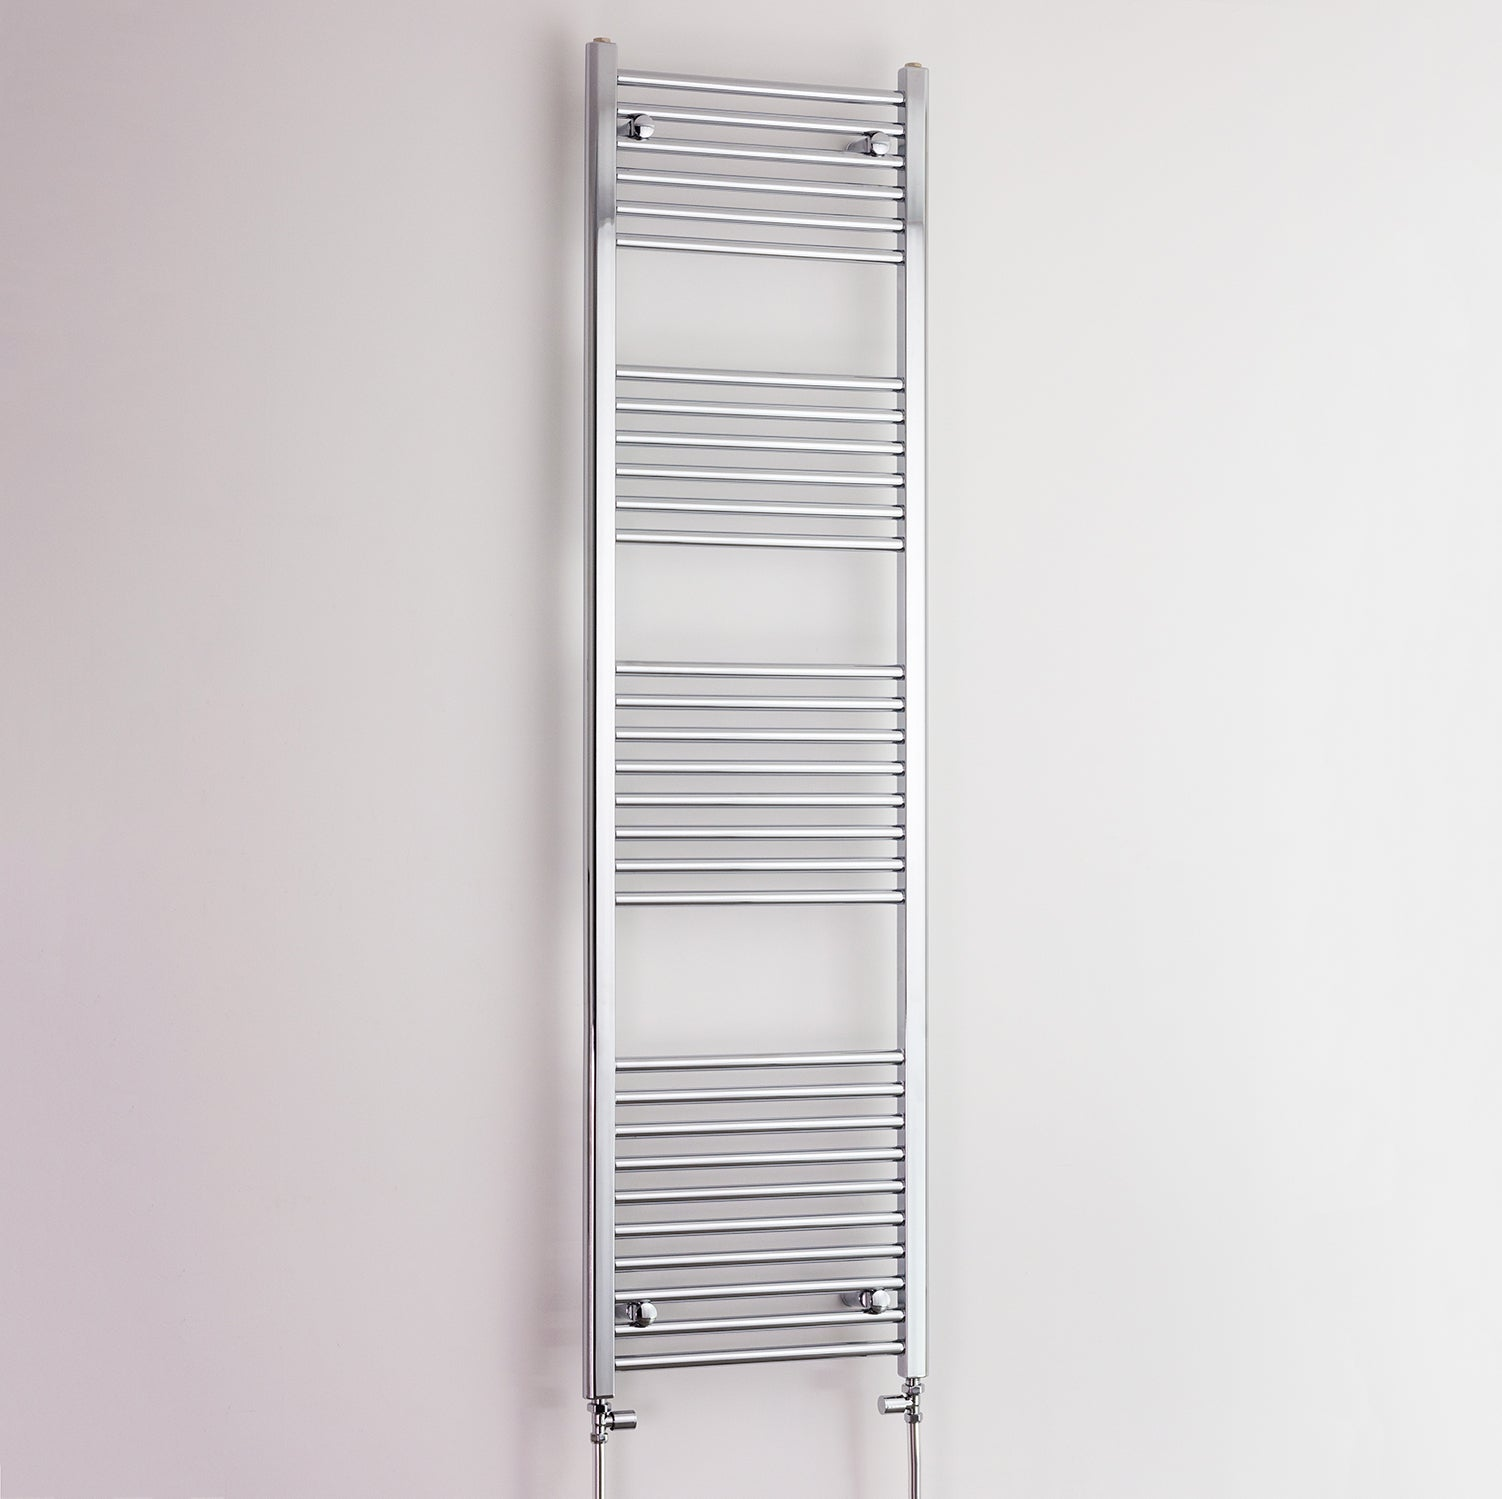 400mm Wide 1800mm High Flat Chrome Heated Towel Rail Radiator HTR,With Straight Valve